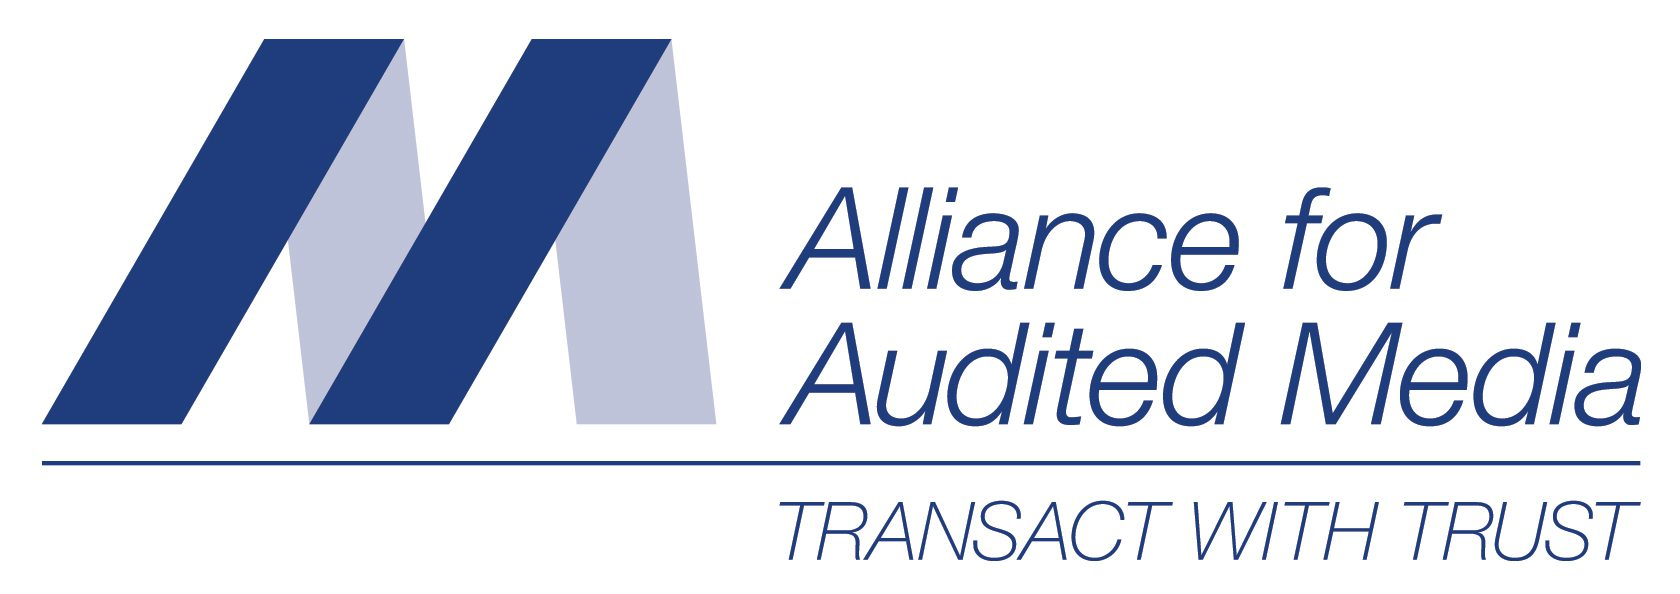 Alliance for Audited Media - AMPA Sponsor